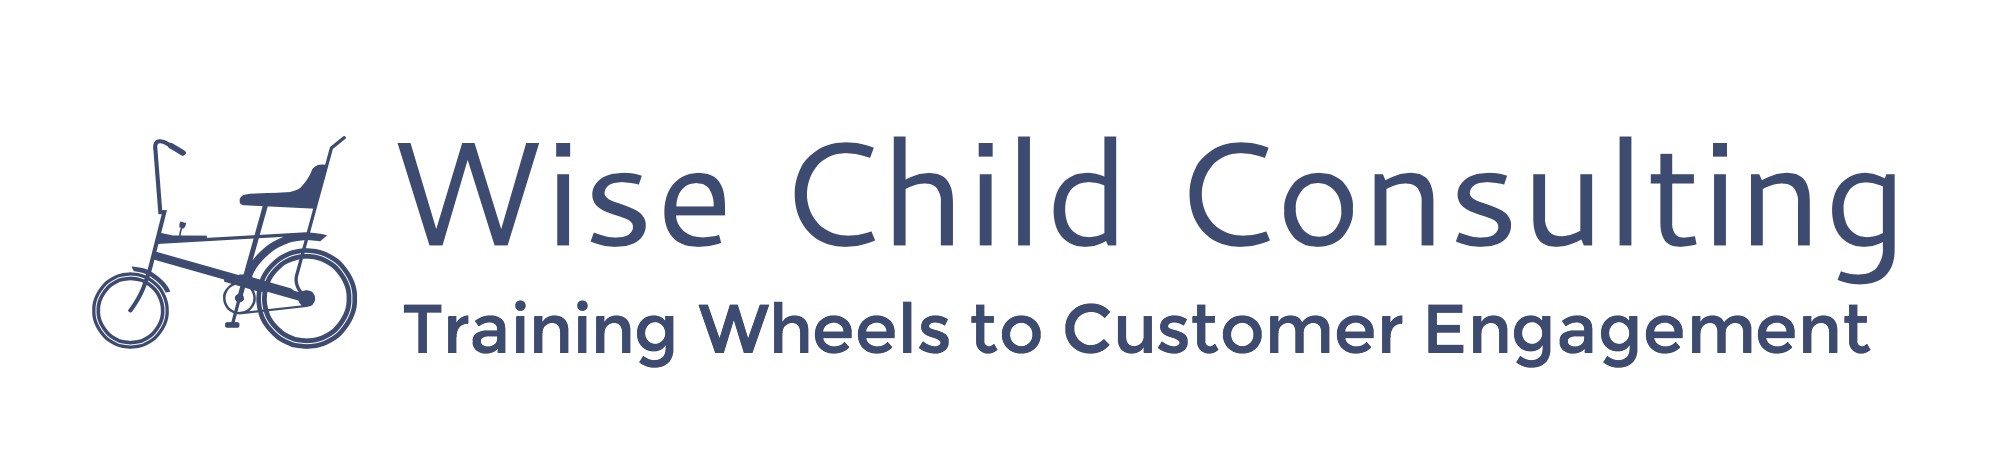 Wise Child Consulting, Oakland, CA logo